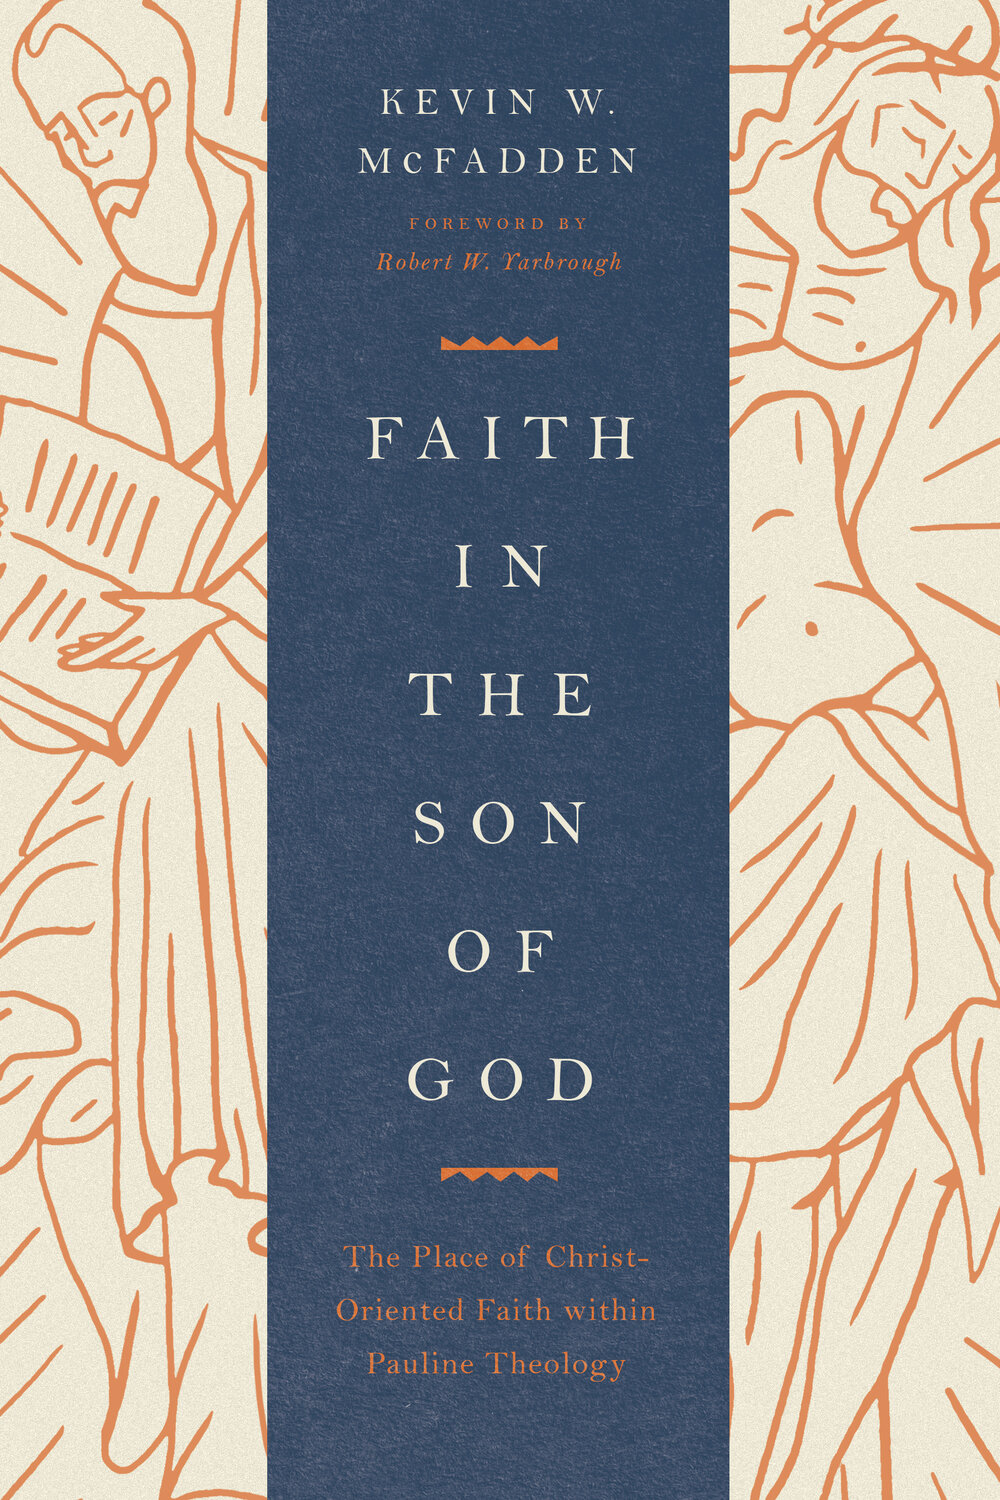 Faith in the Son of God: The Place of Christ-Oriented Faith within Pauline Theology